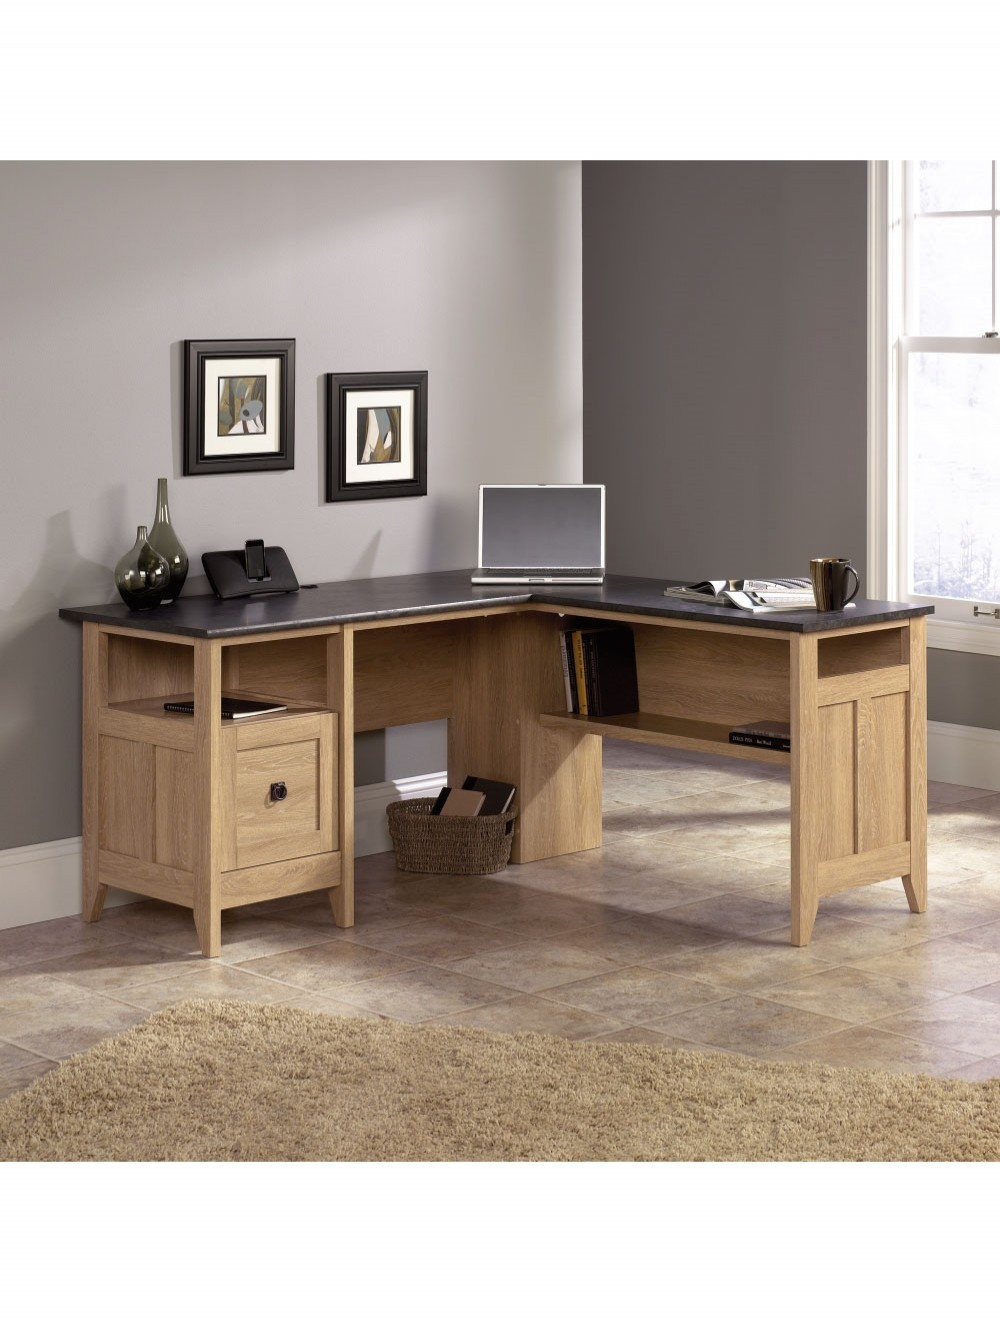 pc workstation home desk table zety wood contemporary desks pin laptop office study computer furniture